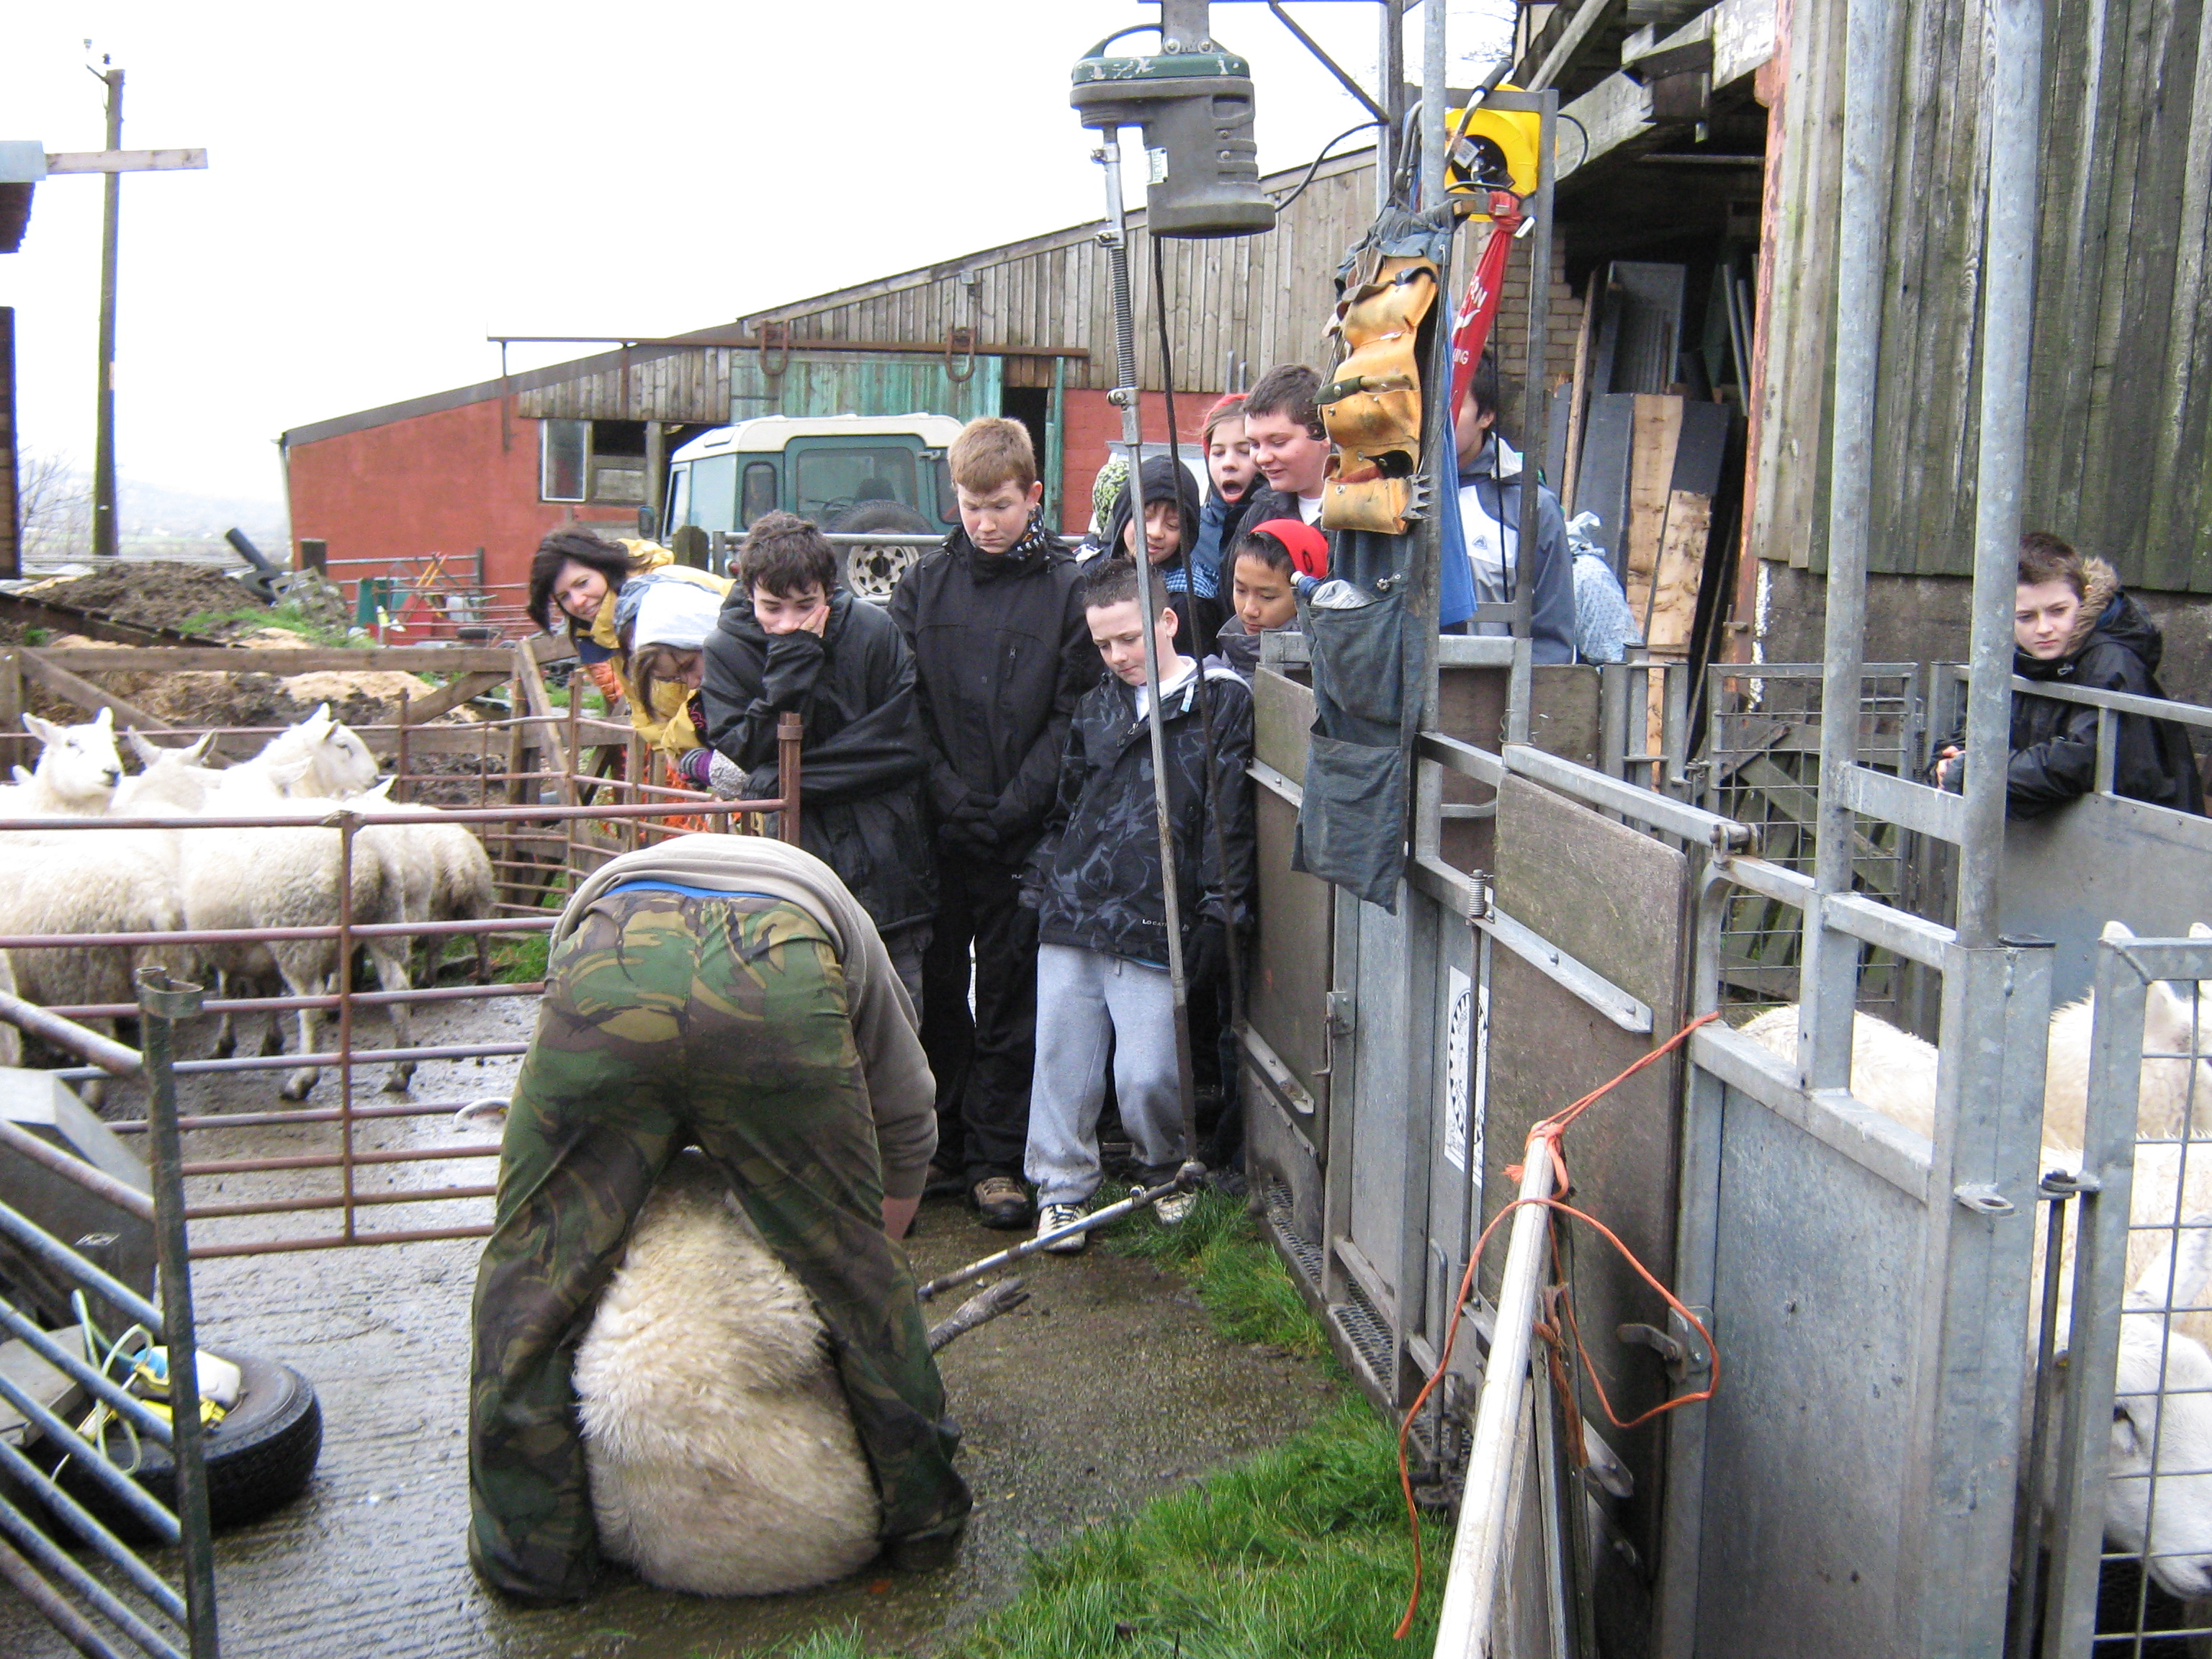 Watching sheep being clipped